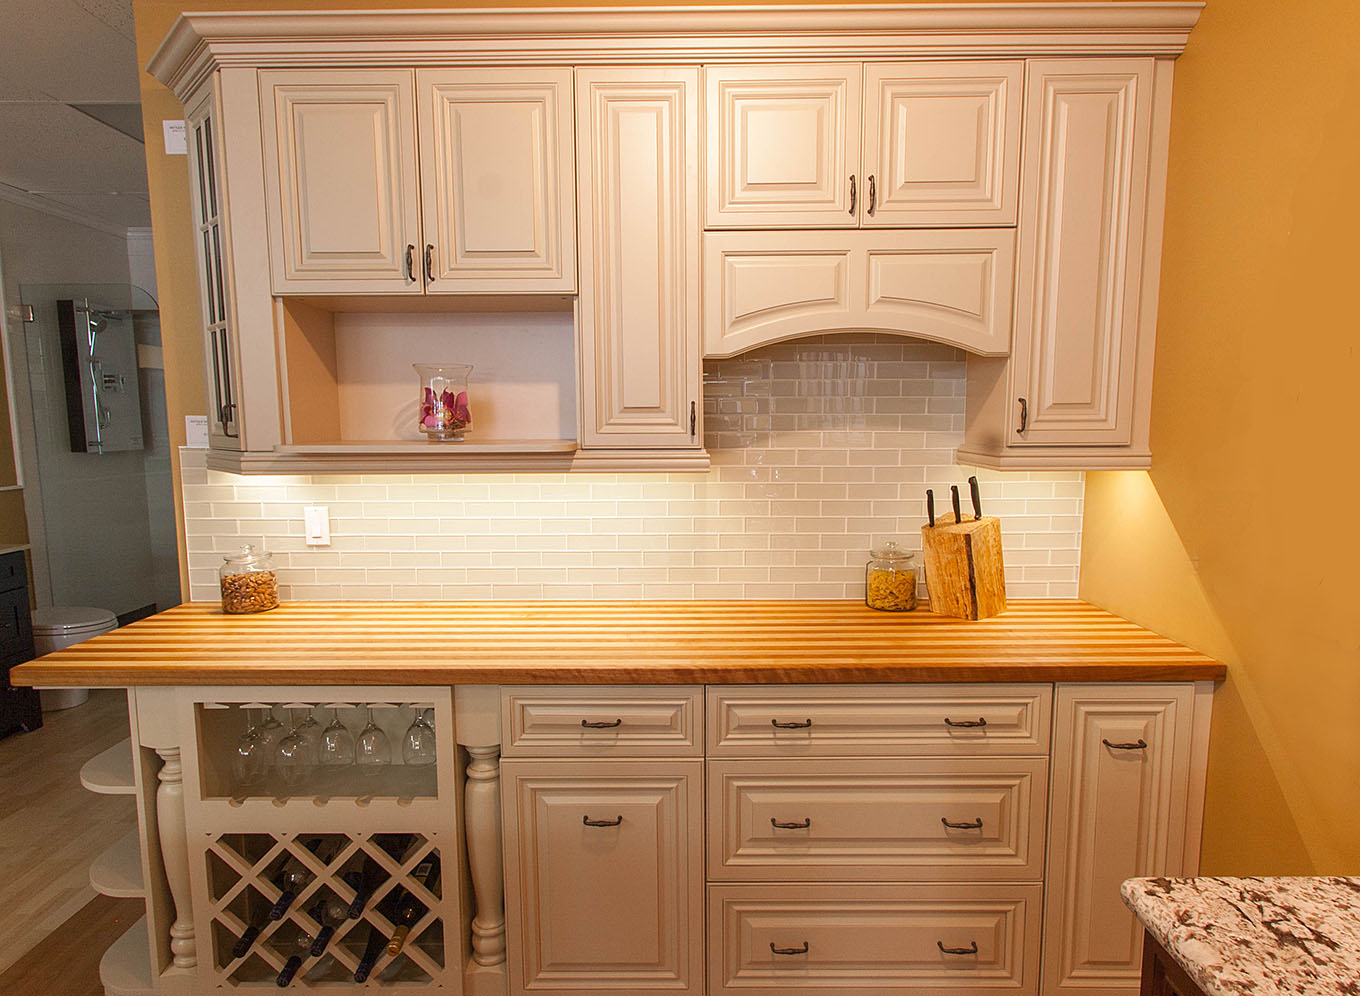 Custom Butcher Block Kitchen Countertops Kitchen Renovations Design Ideas - Your Home Renovation Experts